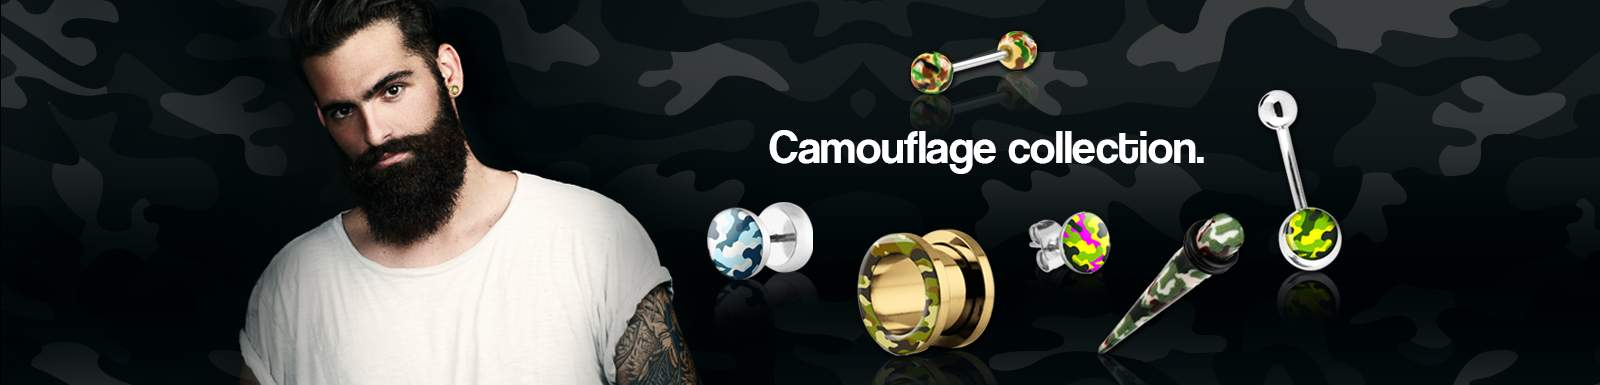 Camouflage collection en